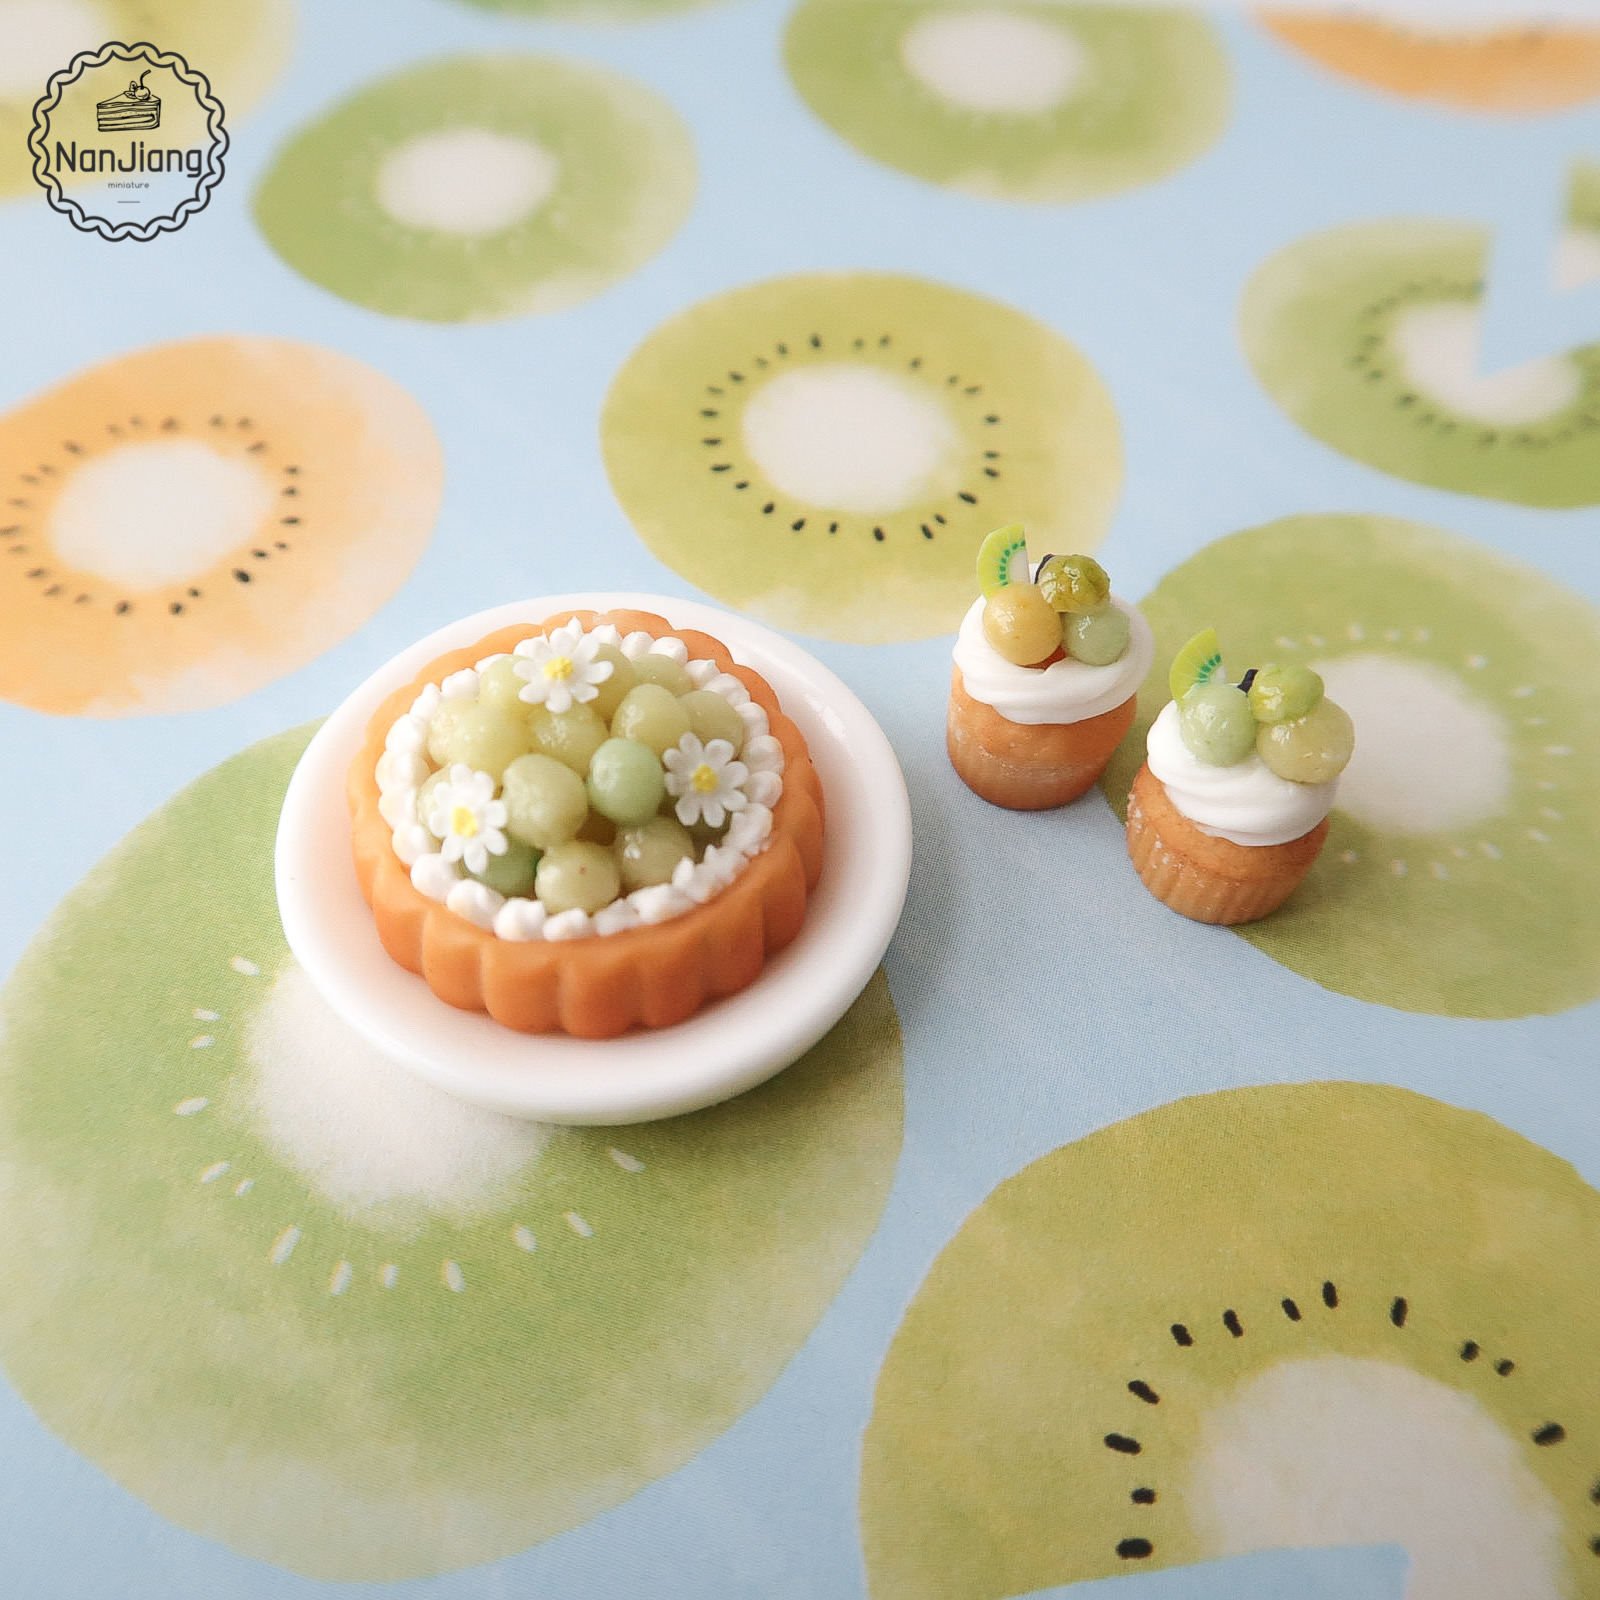 Miniature world food and play fruit pie muffin ob11 Mini scene 12 point Baby House accessories BJD food model